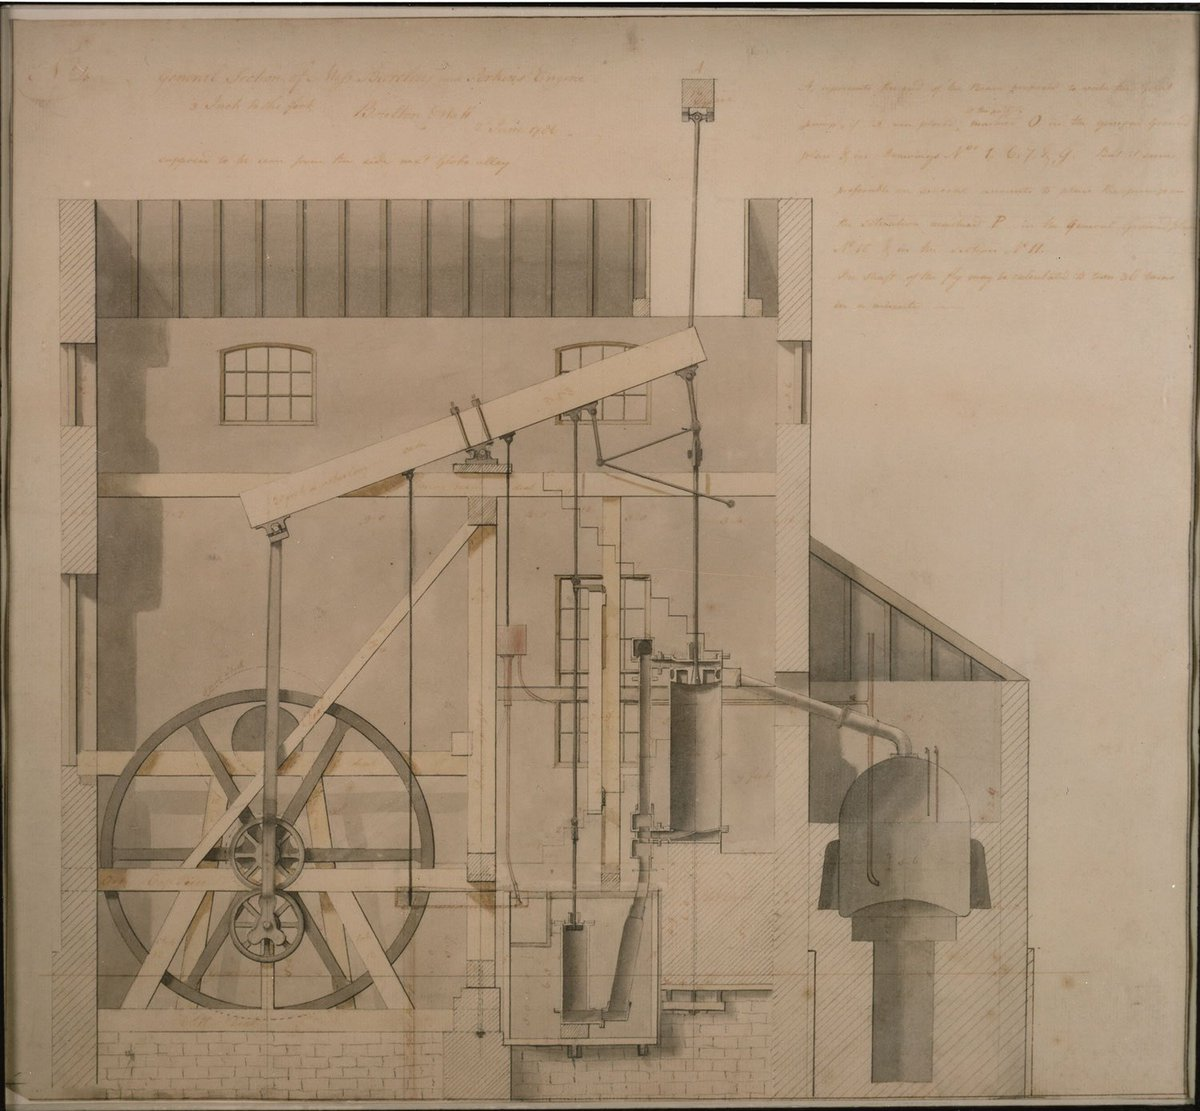 test Twitter Media - #DidYouKnow James Watt's refinements of the steam engine helped to kickstart the Industrial Revolution? See some of his original drawings illustrating his innovations in this blog post by curator Ellie Swinbank: https://t.co/06x7ao6LOm #JamesWatt2019 #GoIndustrial https://t.co/q9tCcDvIIA